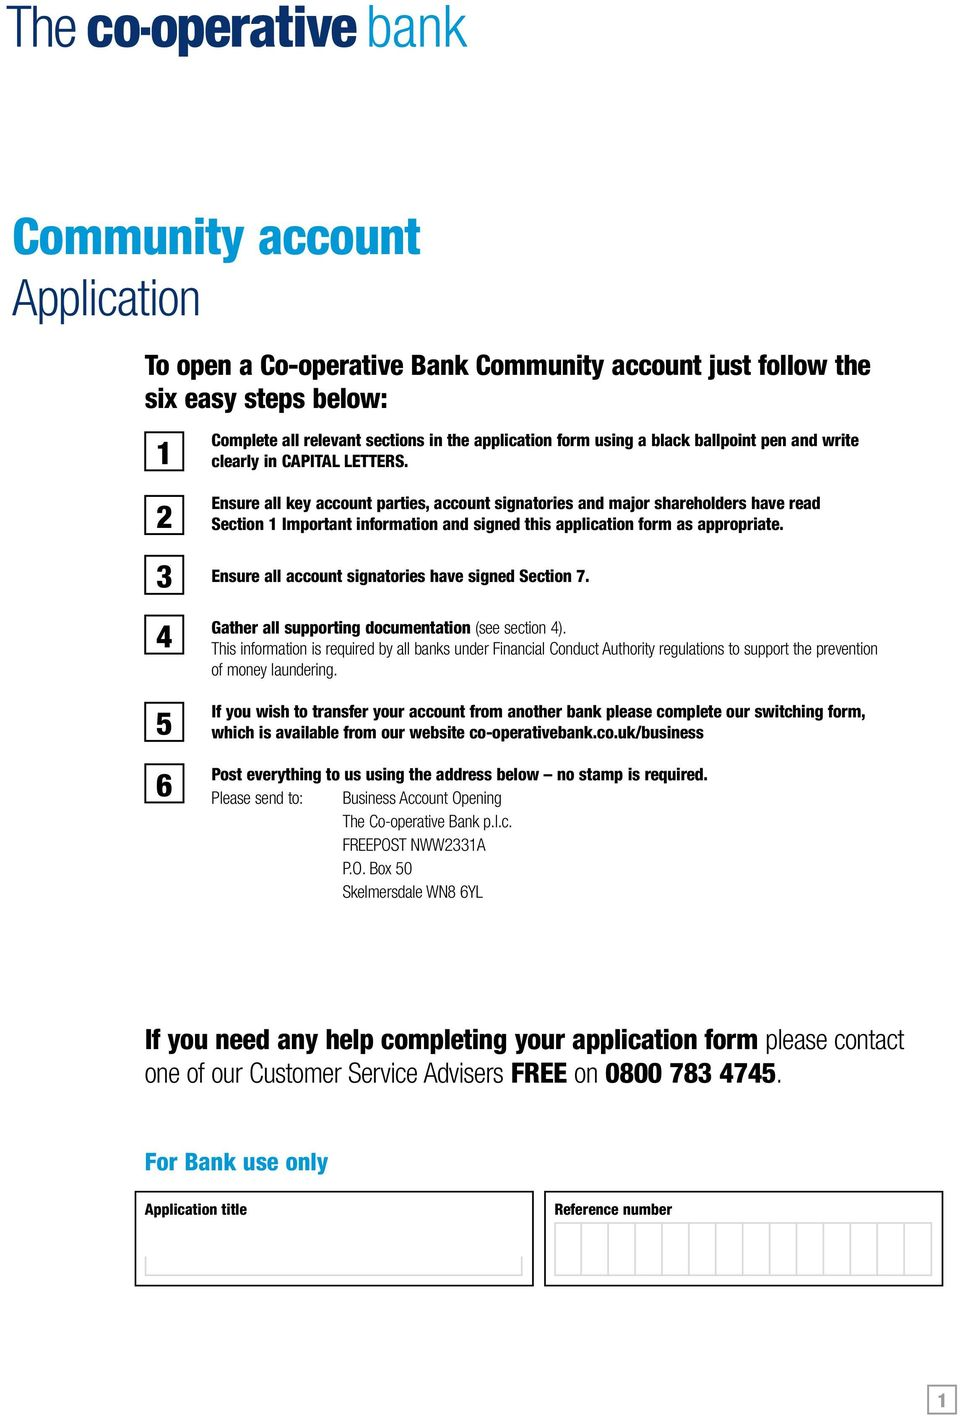 Ensure all key account parties, account signatories and major shareholders have read Section 1 Important information and signed this application form as appropriate.